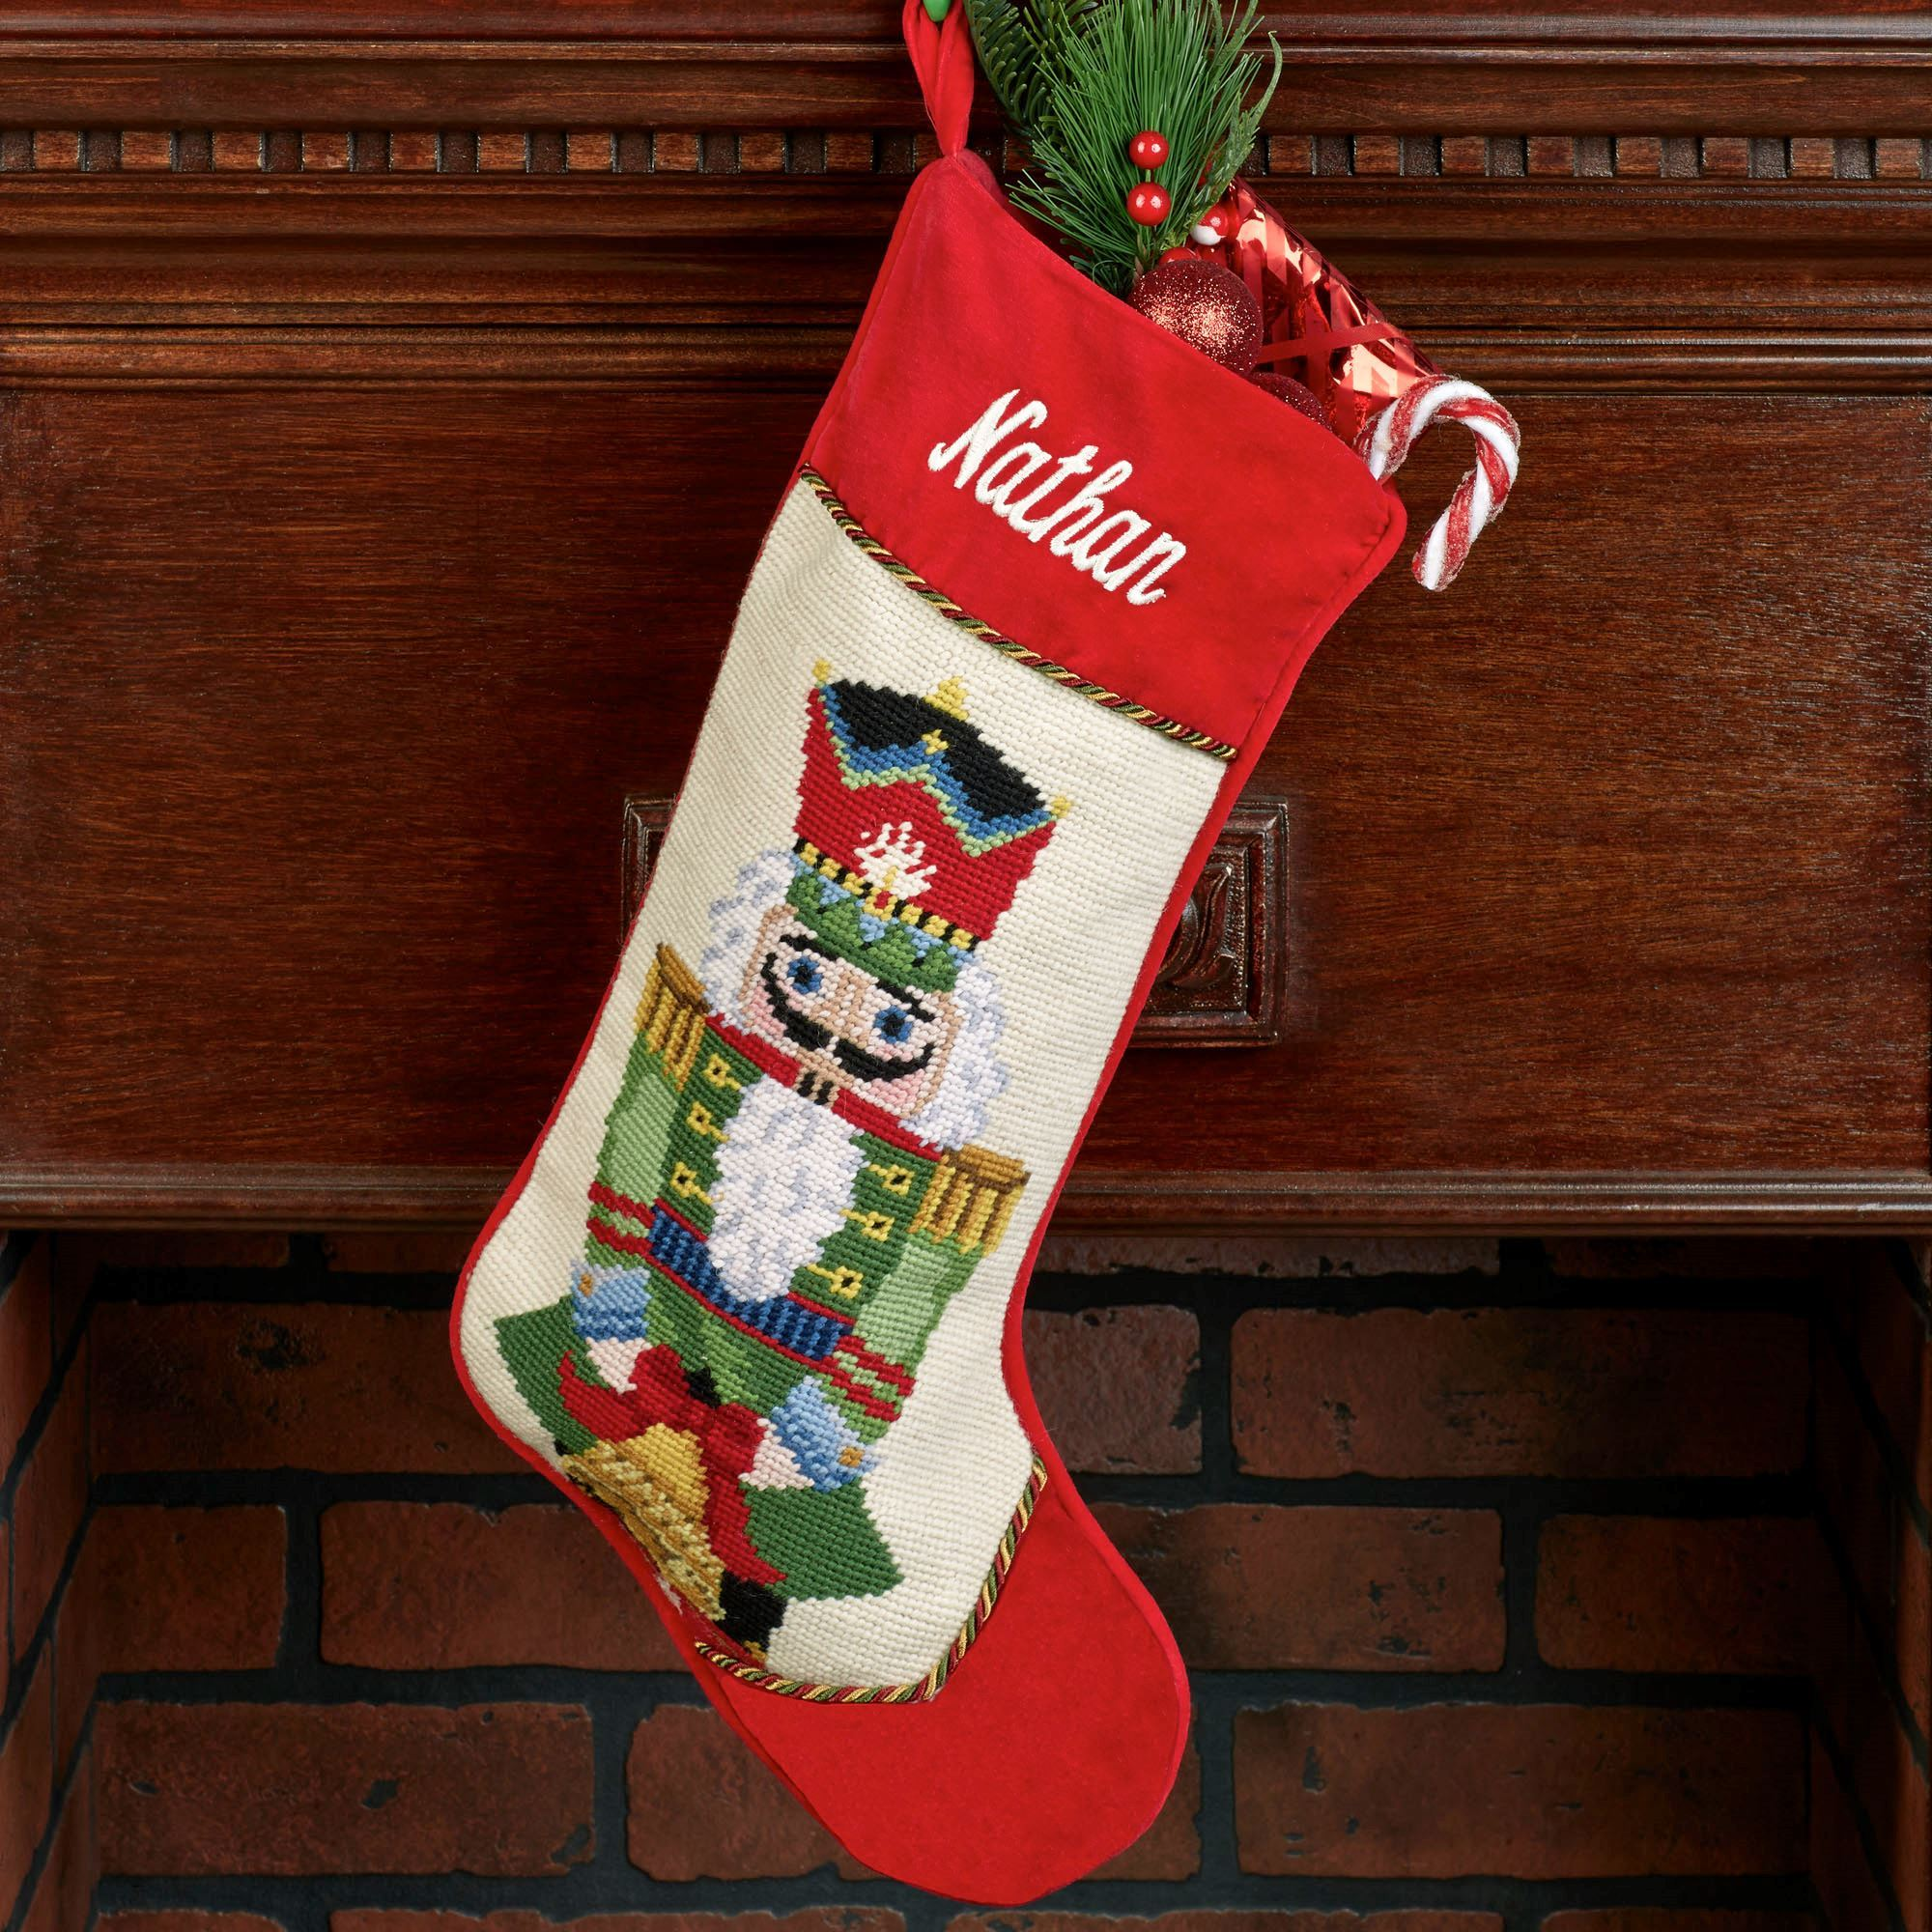 Charming needlepoint stockings and fireplace with mantle shelves in the christmas day